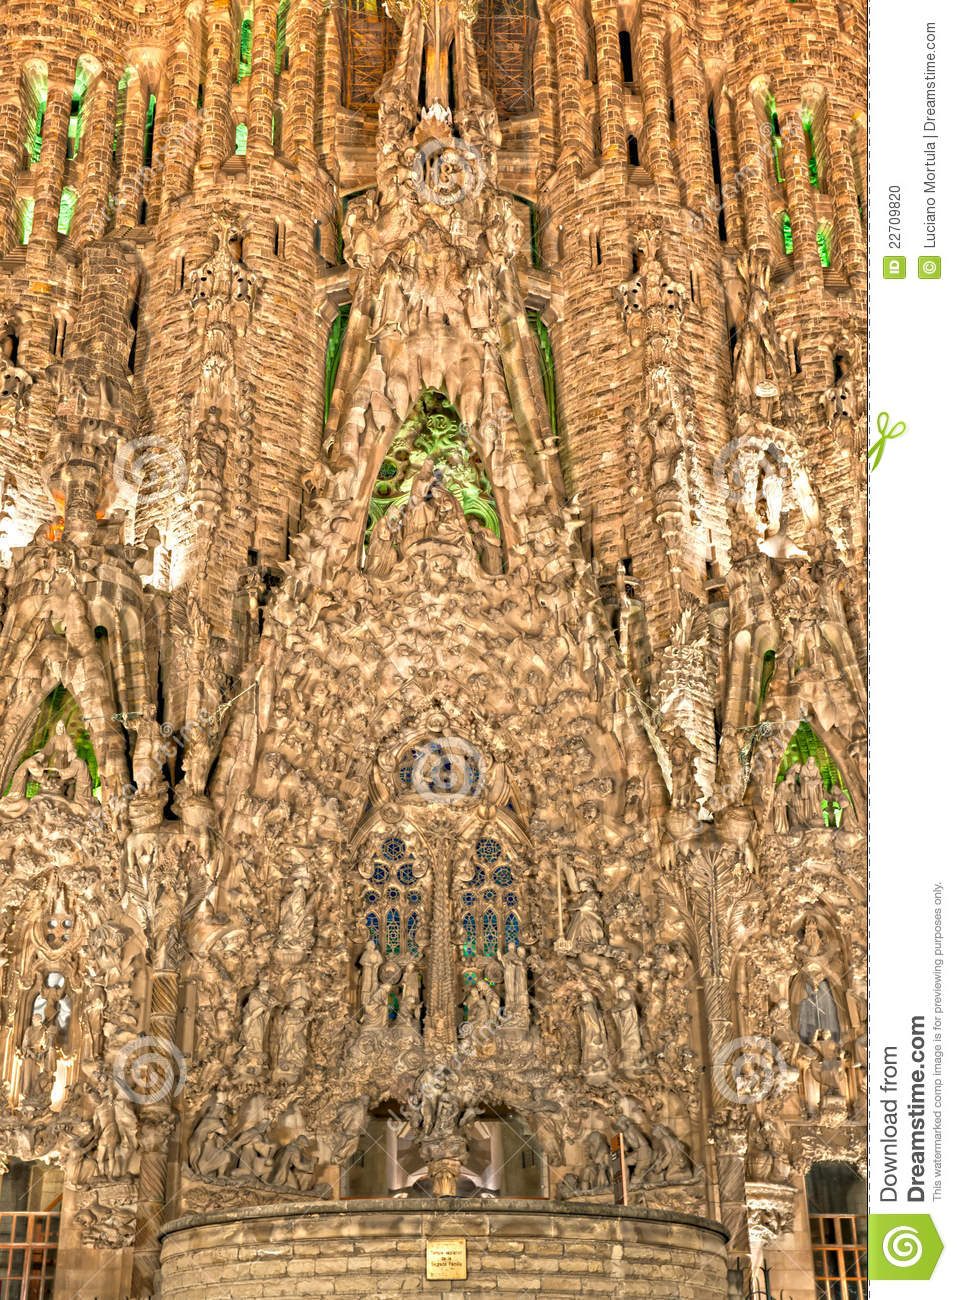 la sagrada familia barcelona spain stock photo image. Black Bedroom Furniture Sets. Home Design Ideas